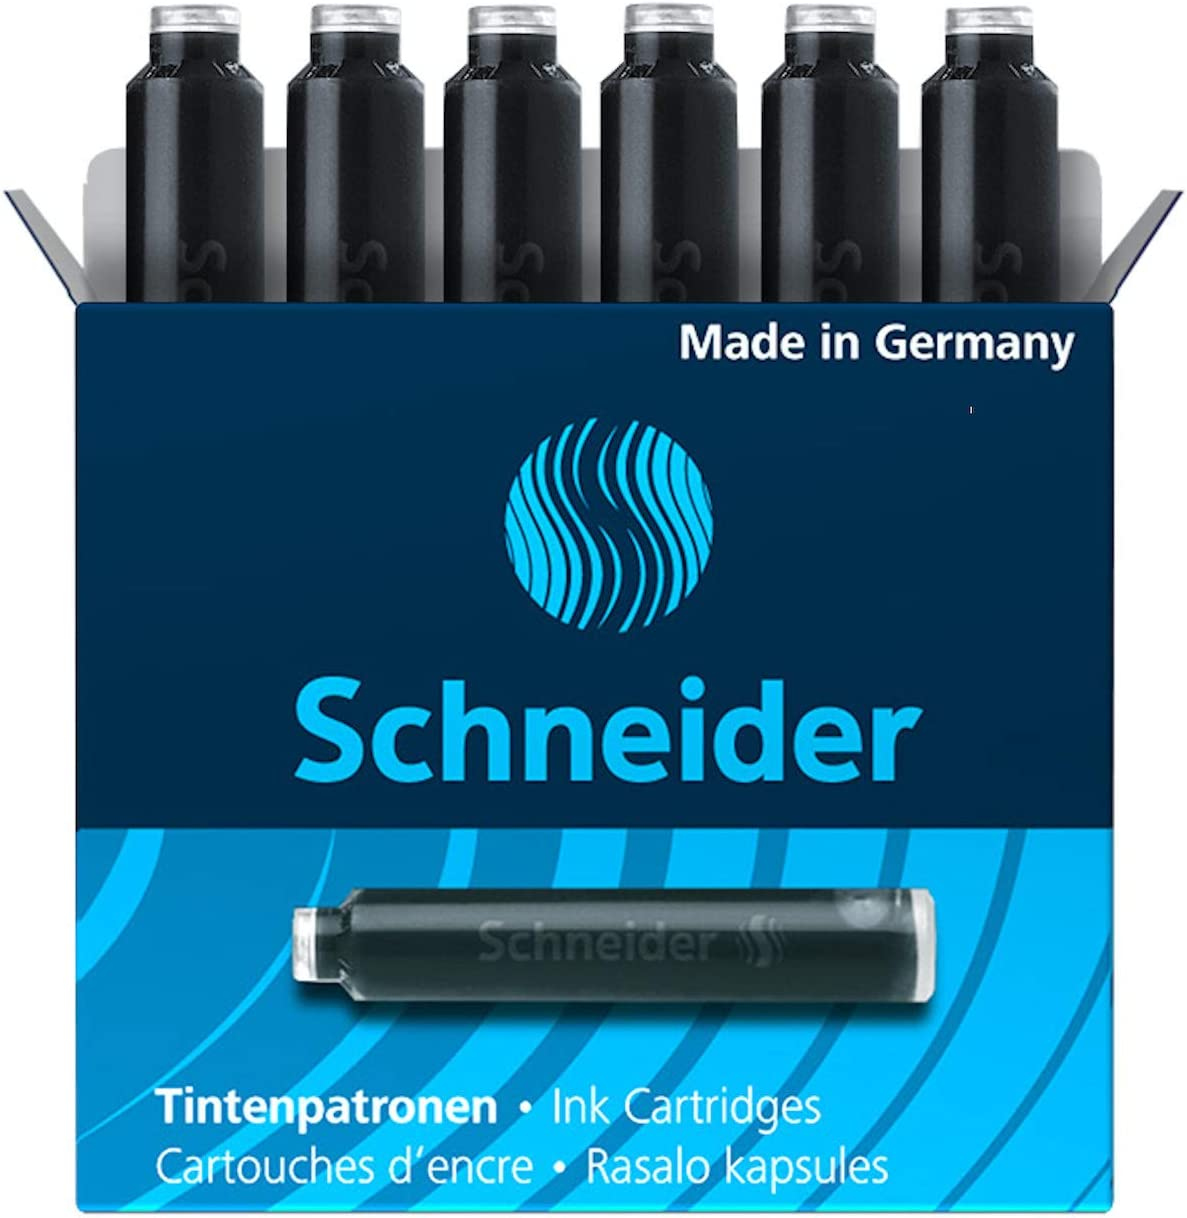 Schneider Fountain Pen Ink Cartridge 06601 Limited time sale Box of 6 Charlotte Mall Black